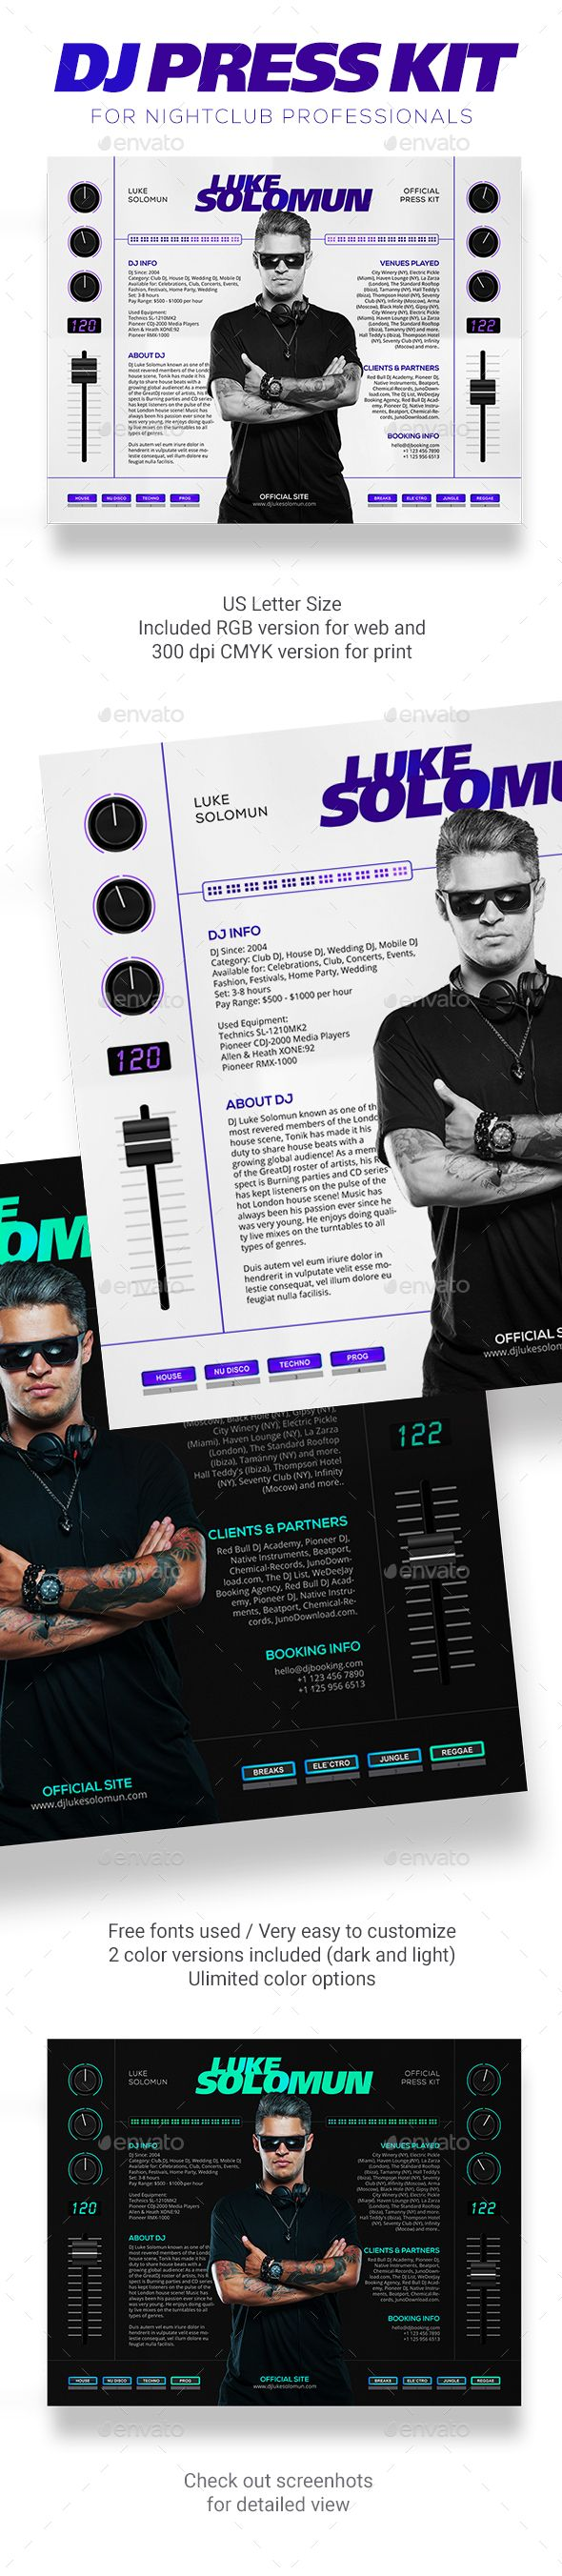 MaDJestik - DJ Press Kit / DJ Resume / DJ Rider PSD Template | Press ...